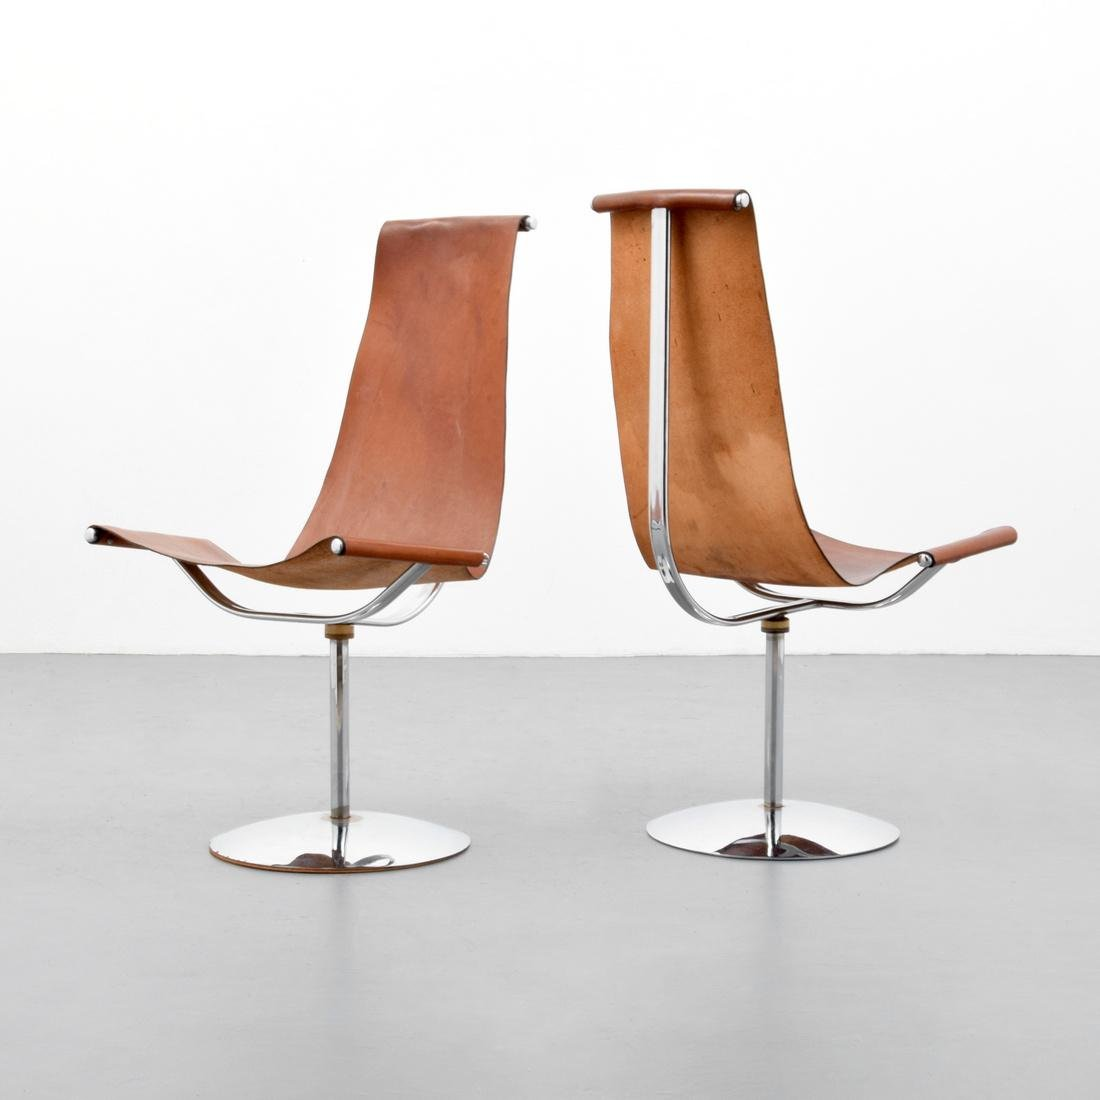 4 Leather Sling Chairs, Manner of Laverne - 8